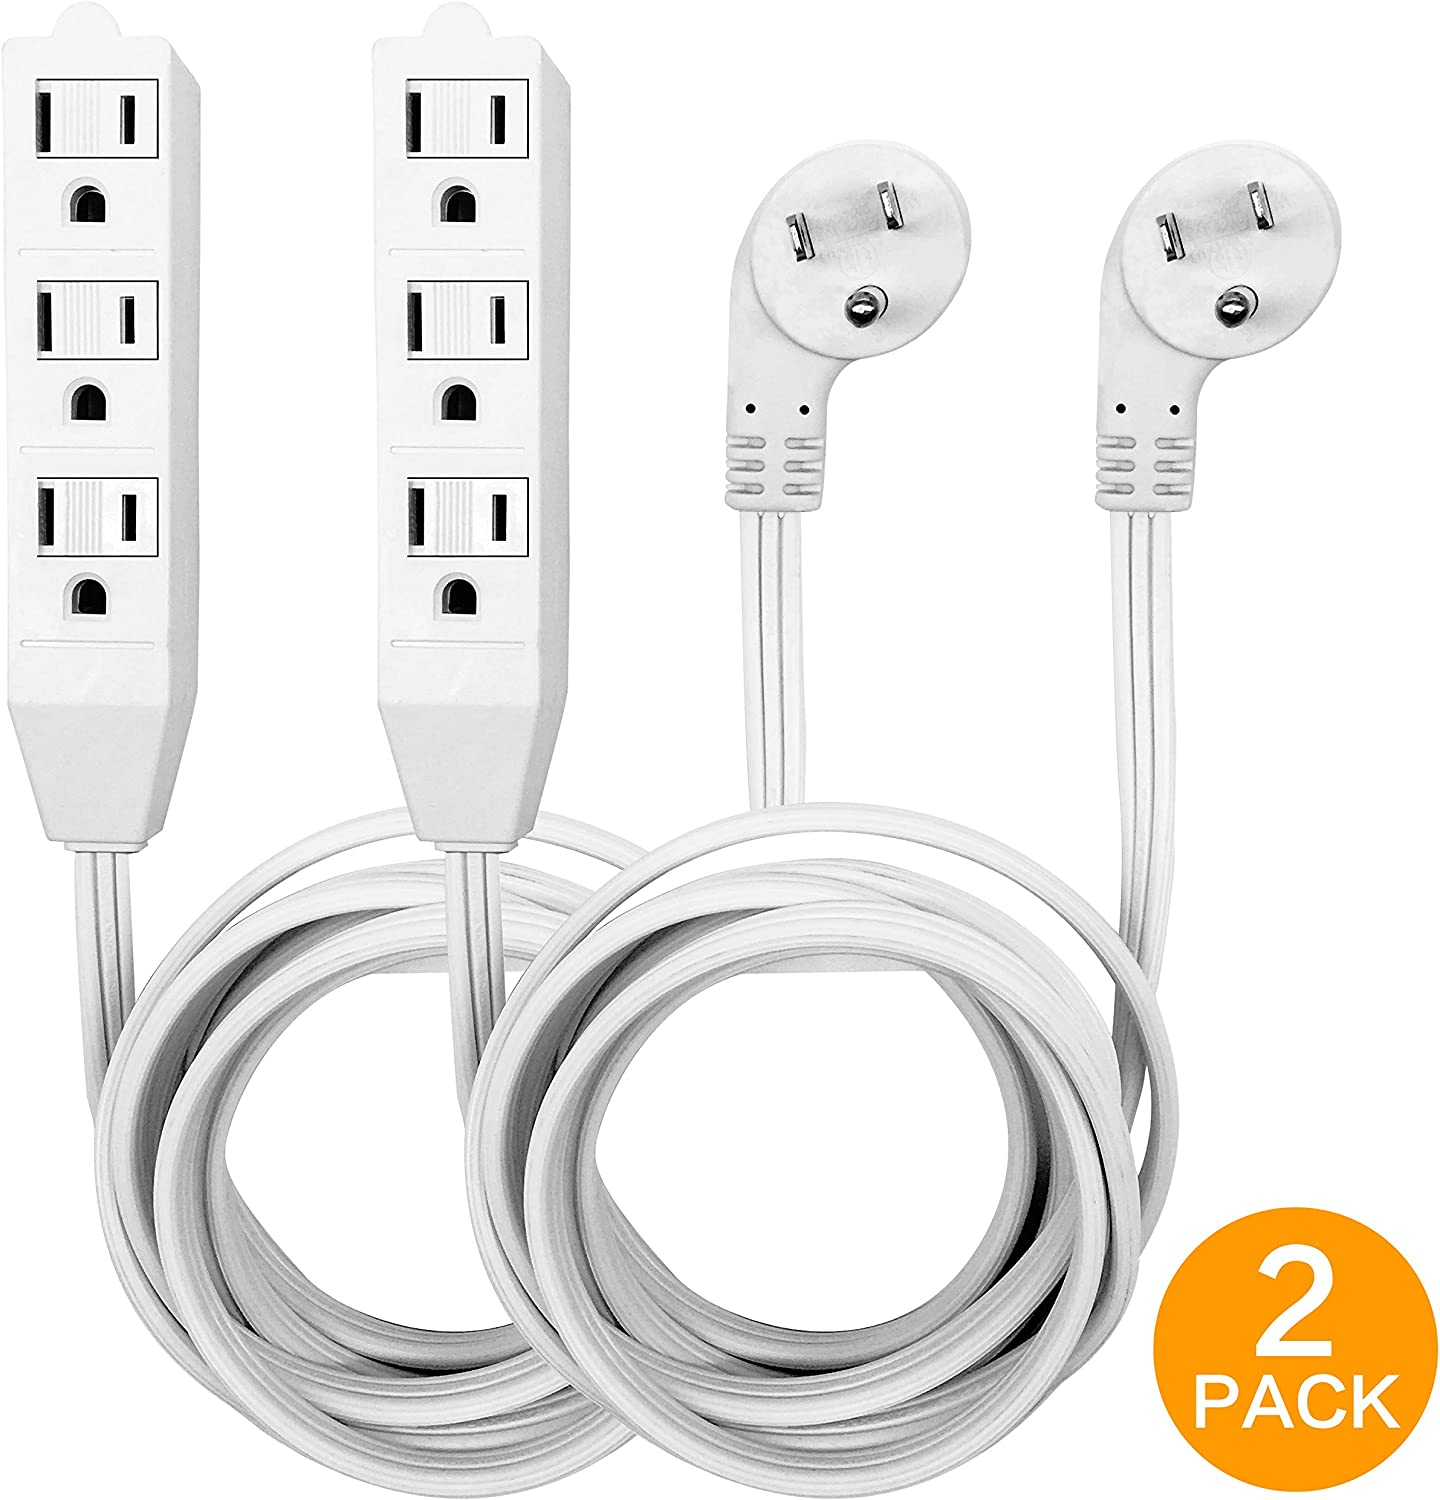 8 Foot Flat Plug Extension Cord, 3 Prong Grounded Wire, Angled Plug, White, UL Listed 2PK